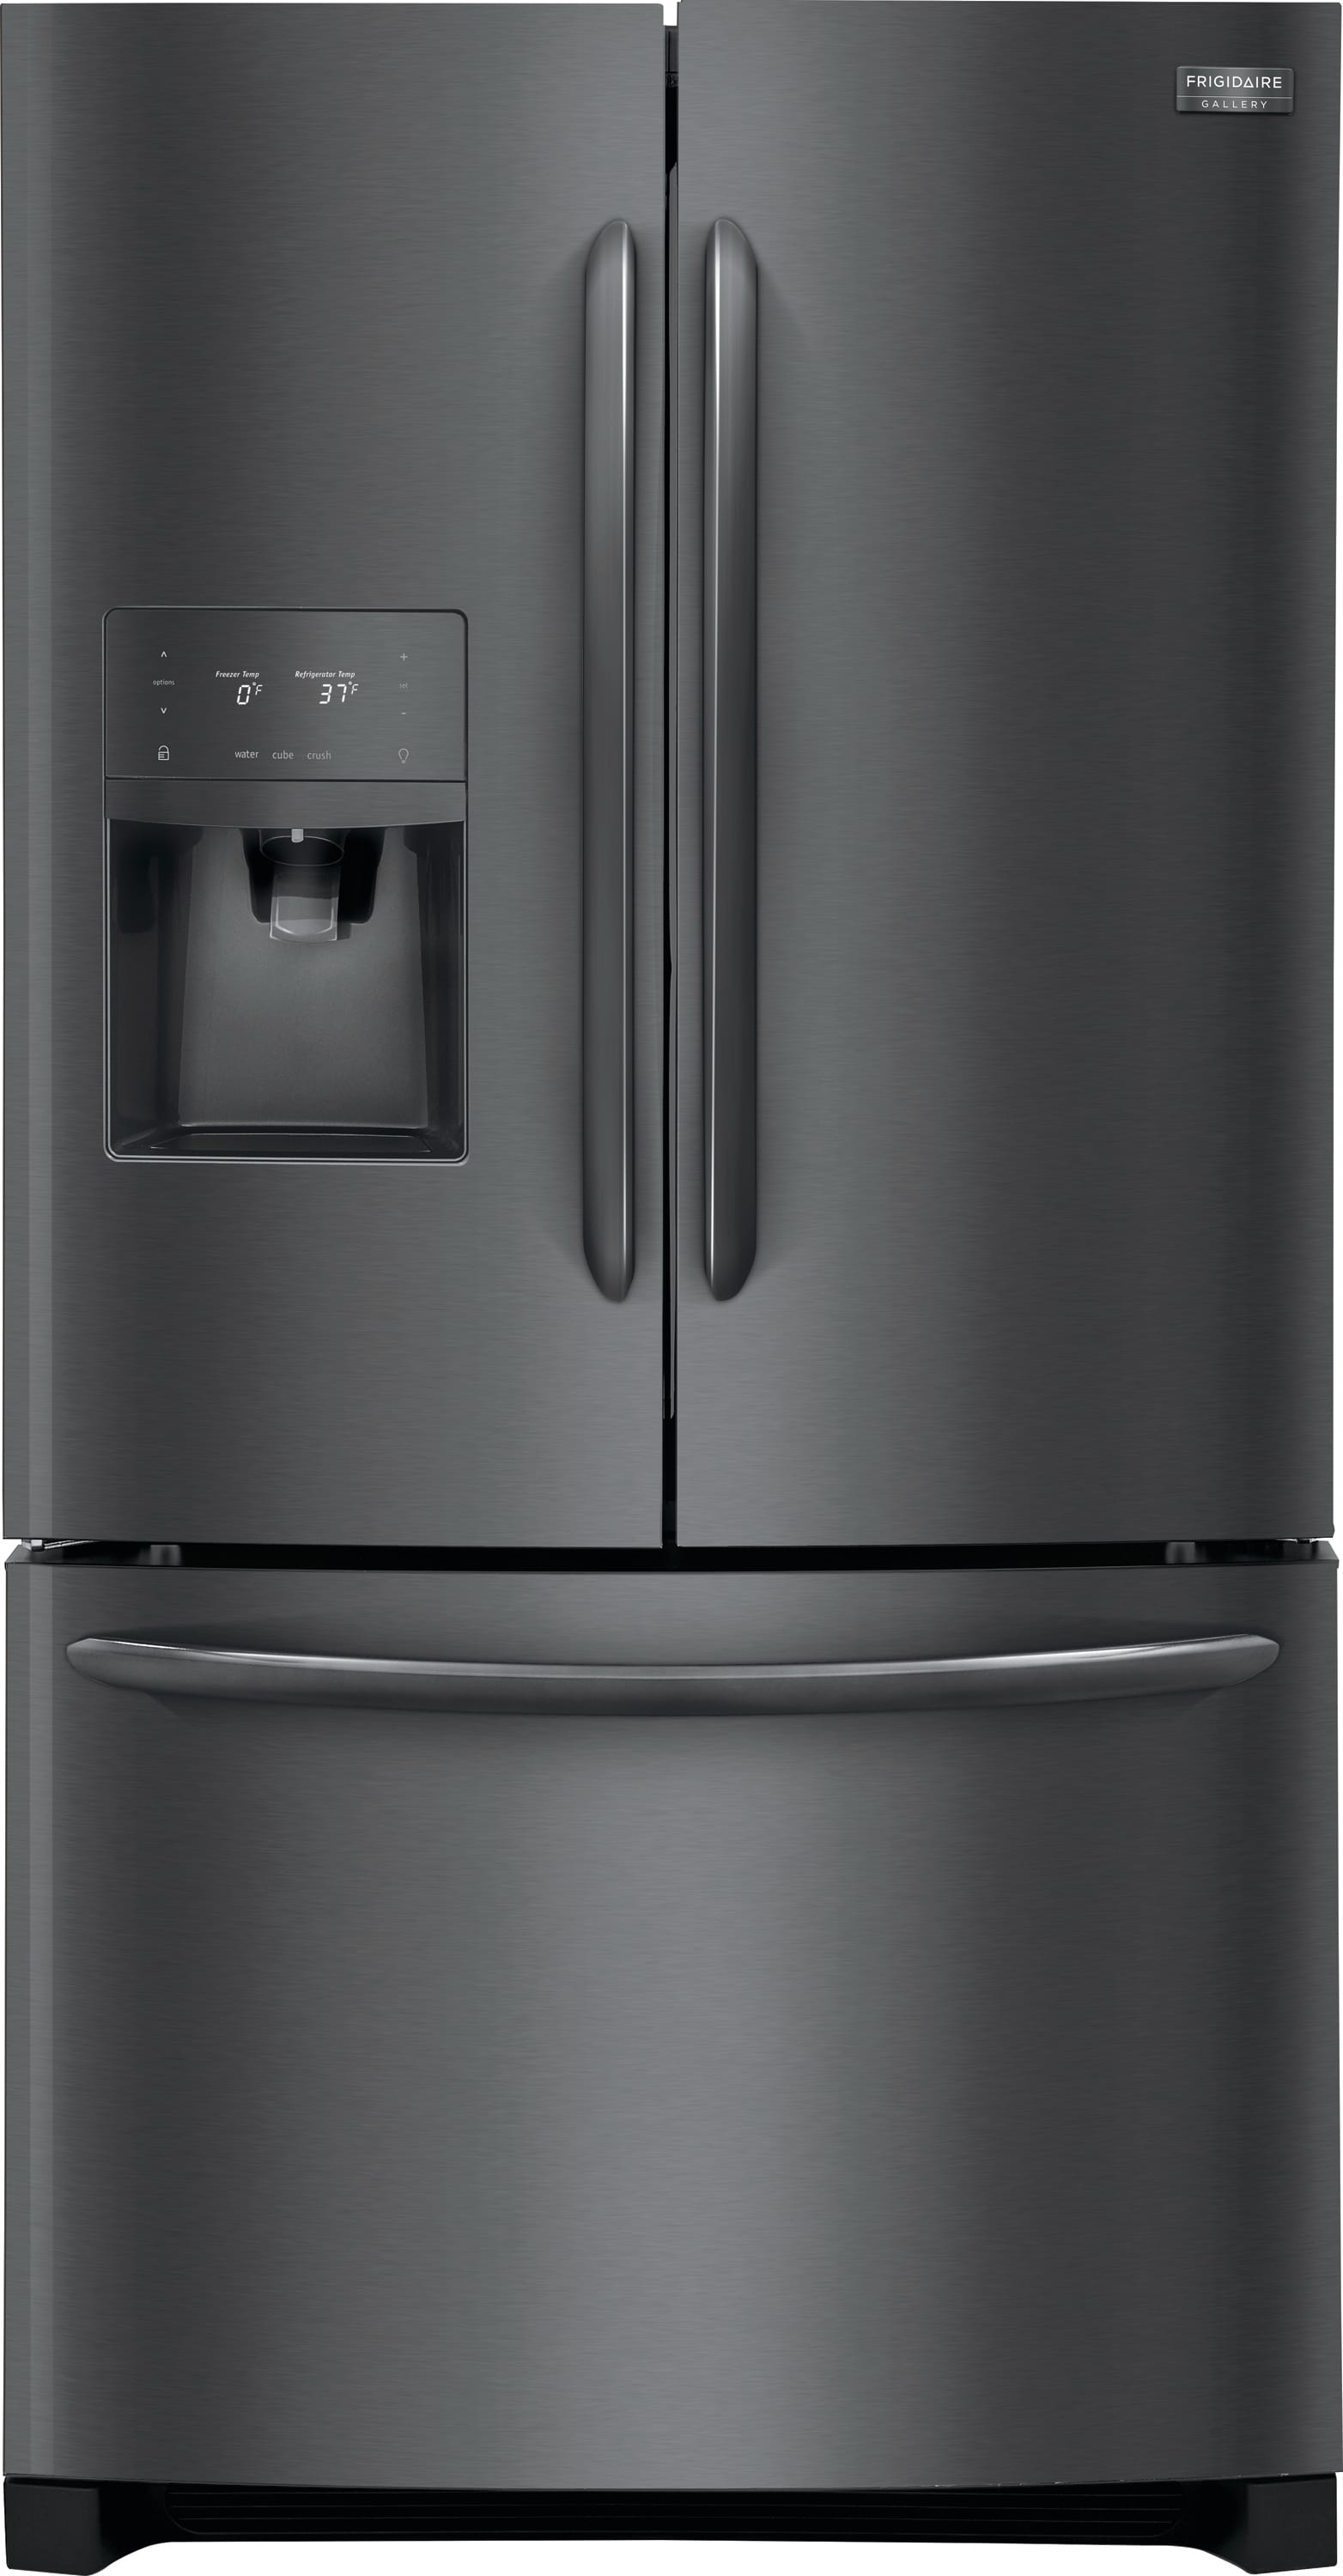 21.7 Cu. Ft. Counter-Depth French Door Refrigerator